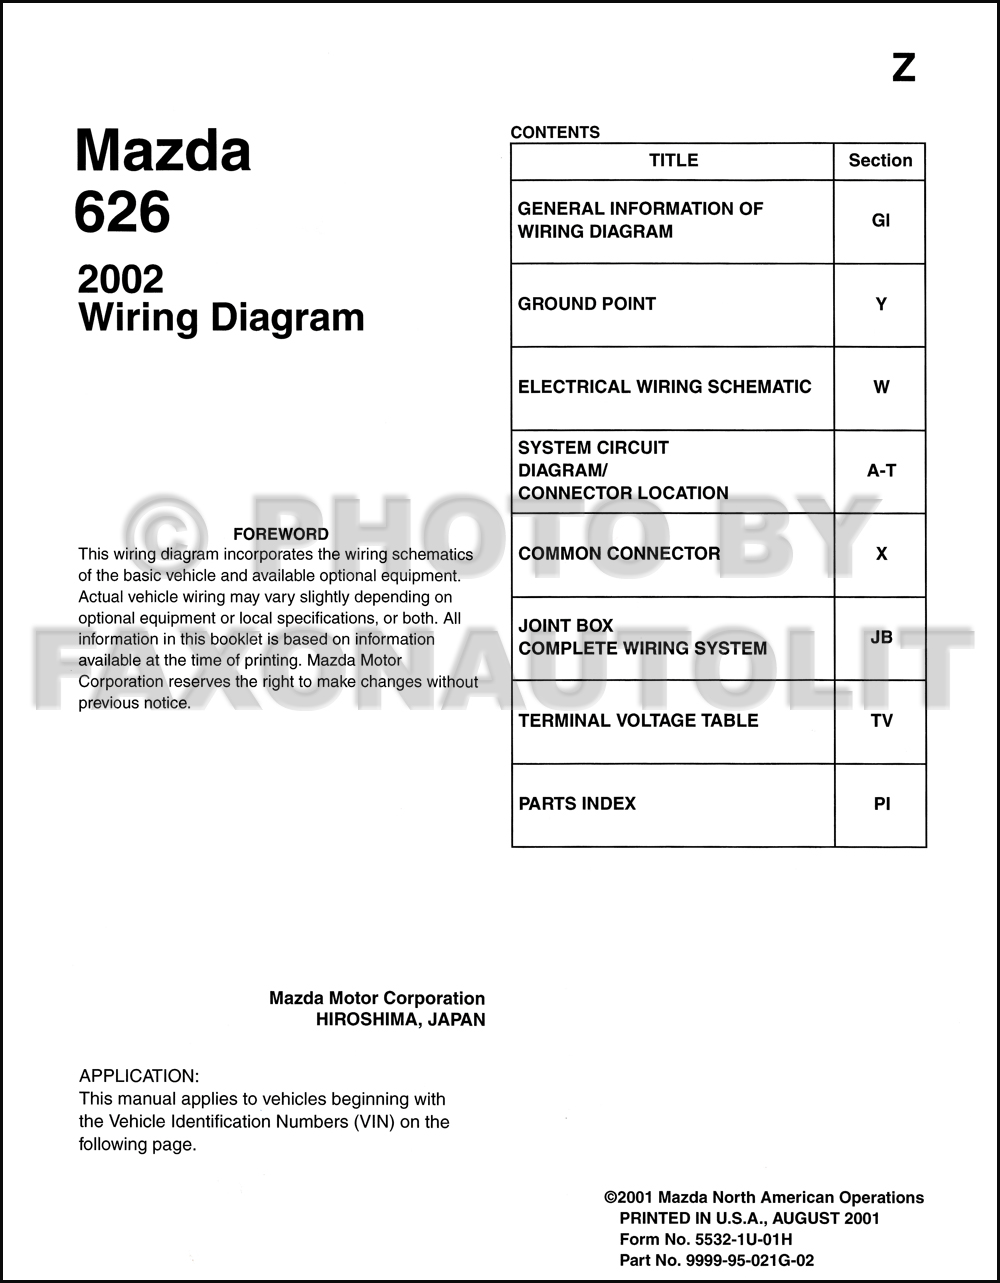 Mazda 626 Wiring Diagrams Schematics 1997 Mx6 Schematic 2002 Diagram Manual Original Rh Faxonautoliterature Com